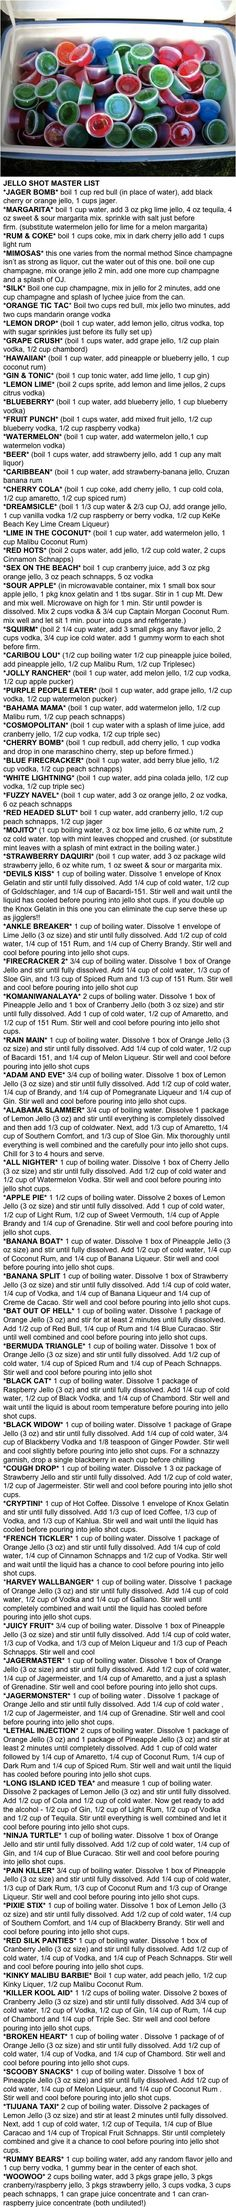 jello shot master recipe list!